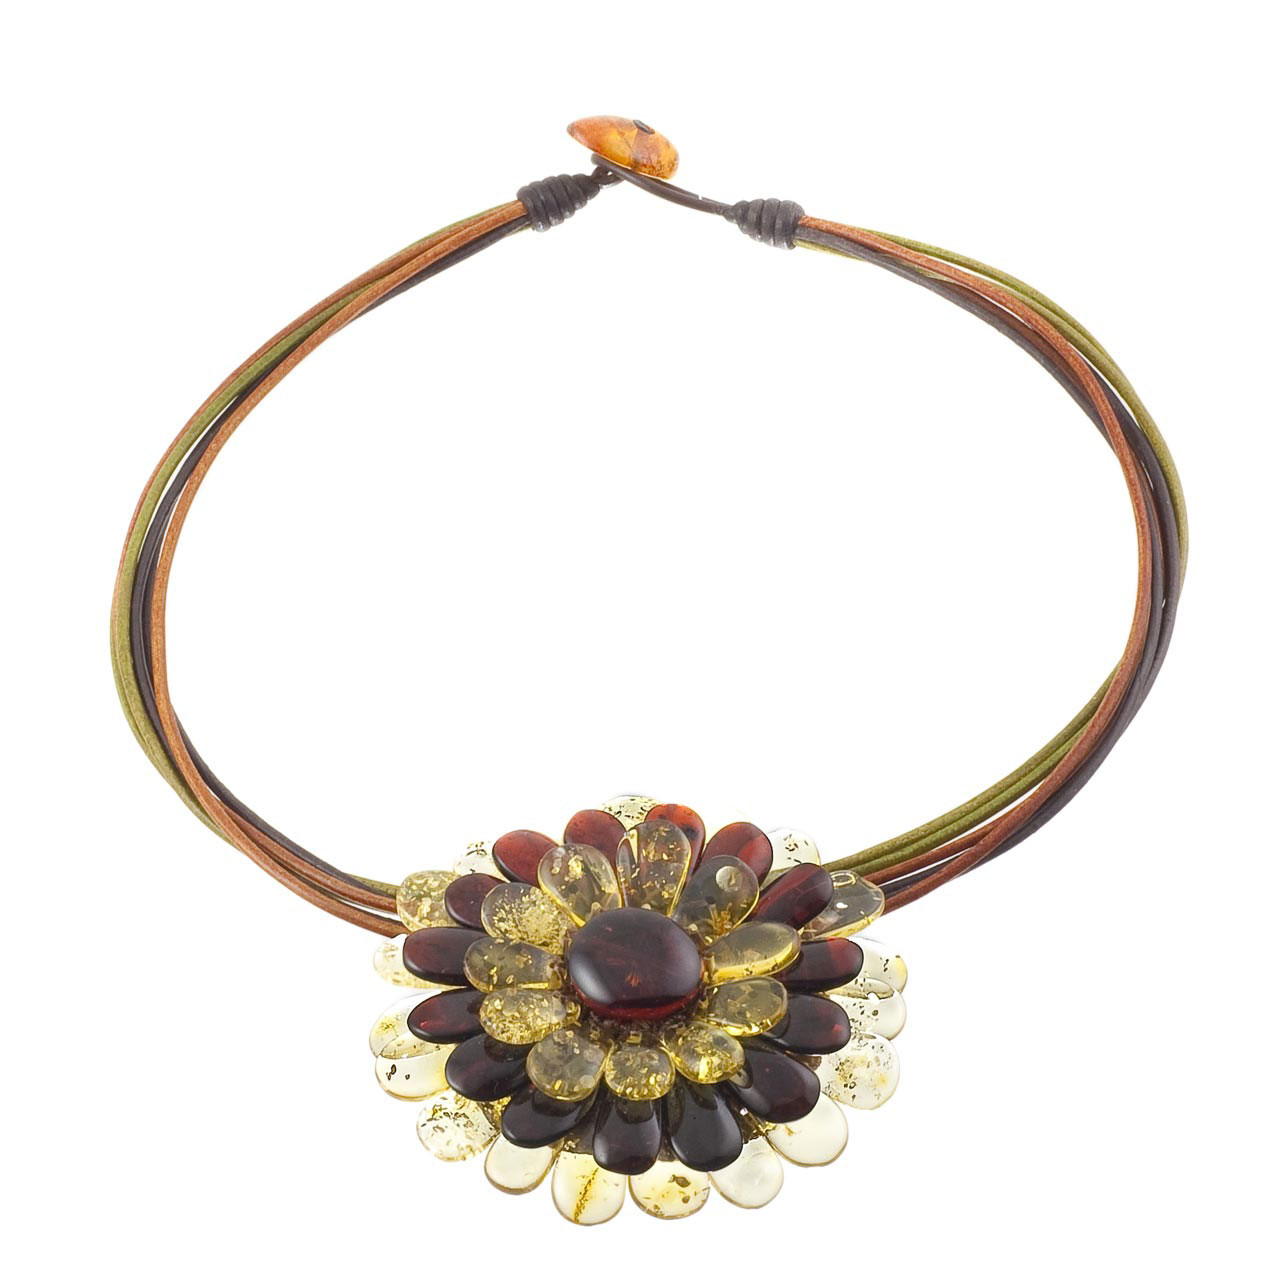 Amber camomile flower necklace 1